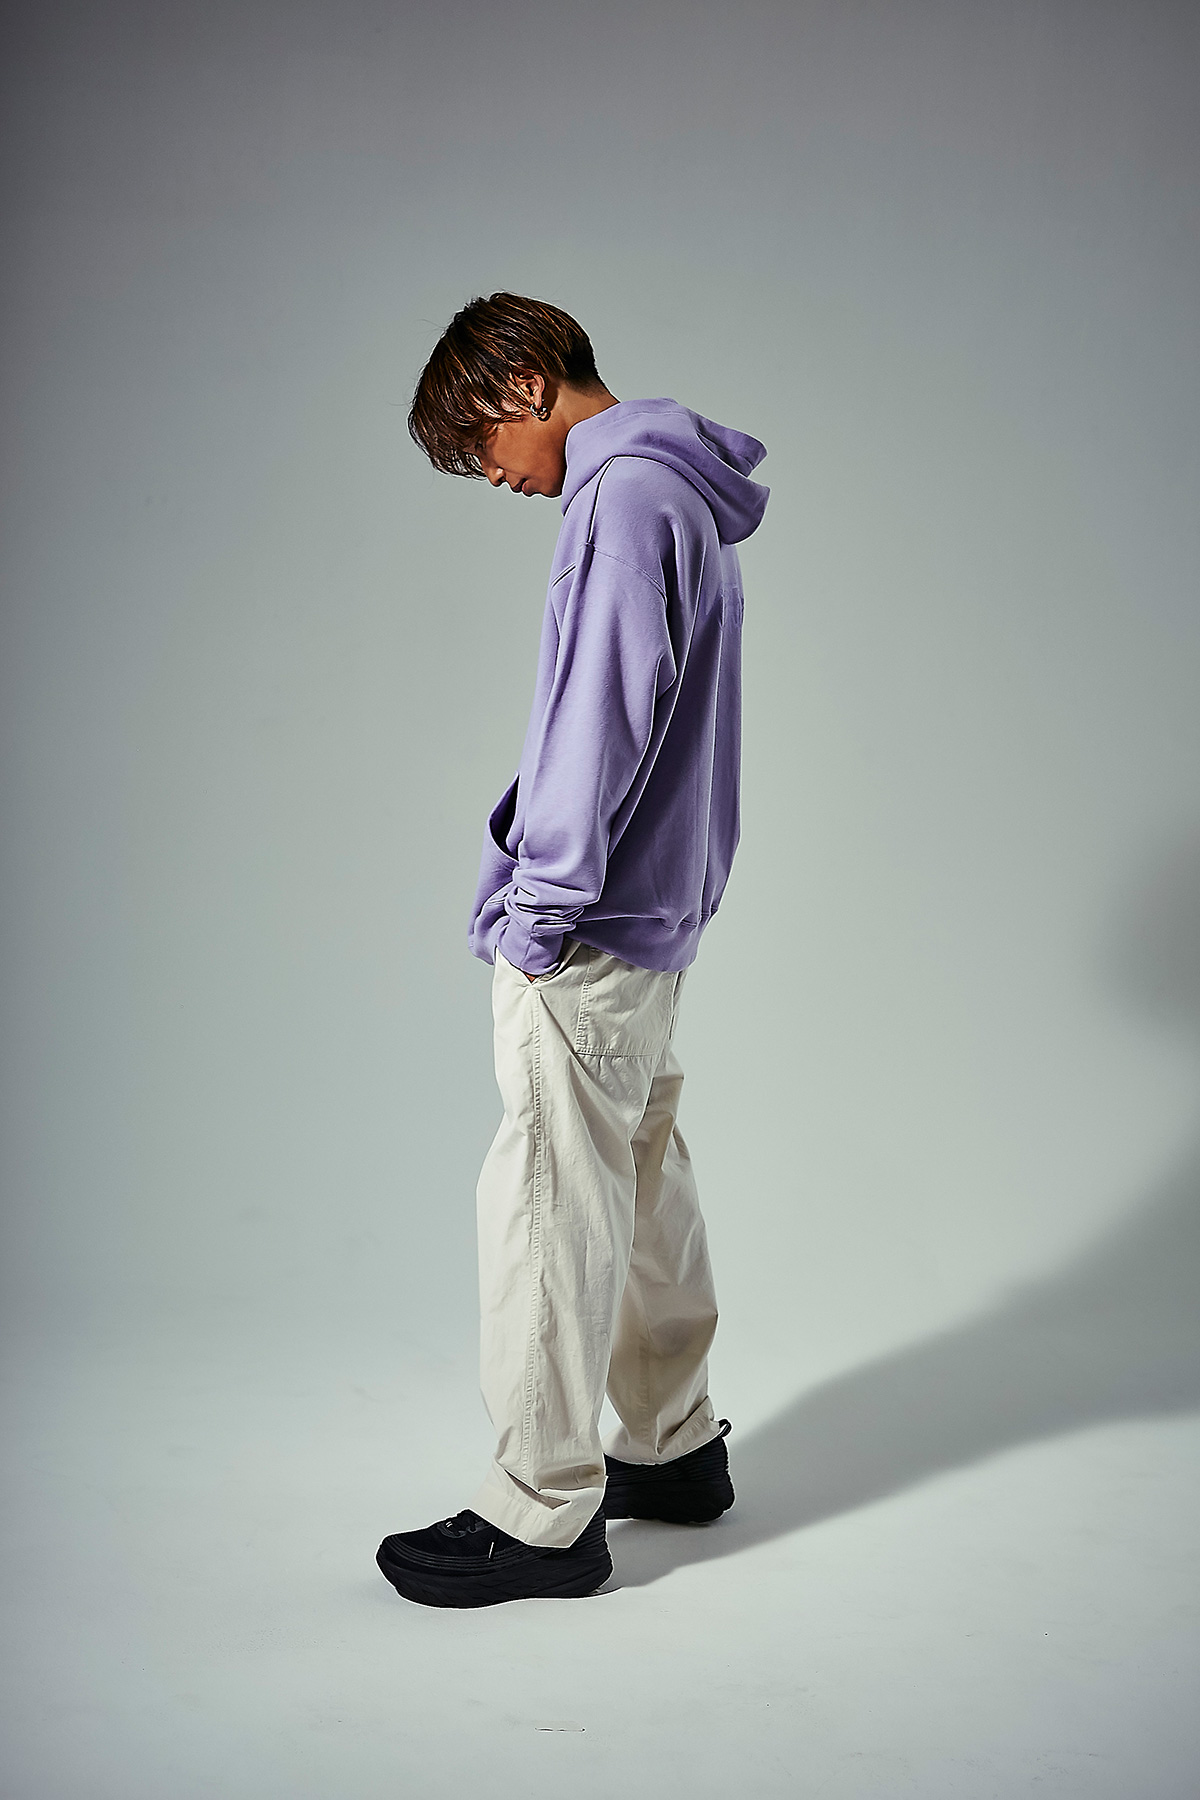 URBAN RESEARCH iD The C vol.5 Taeyoung Boy